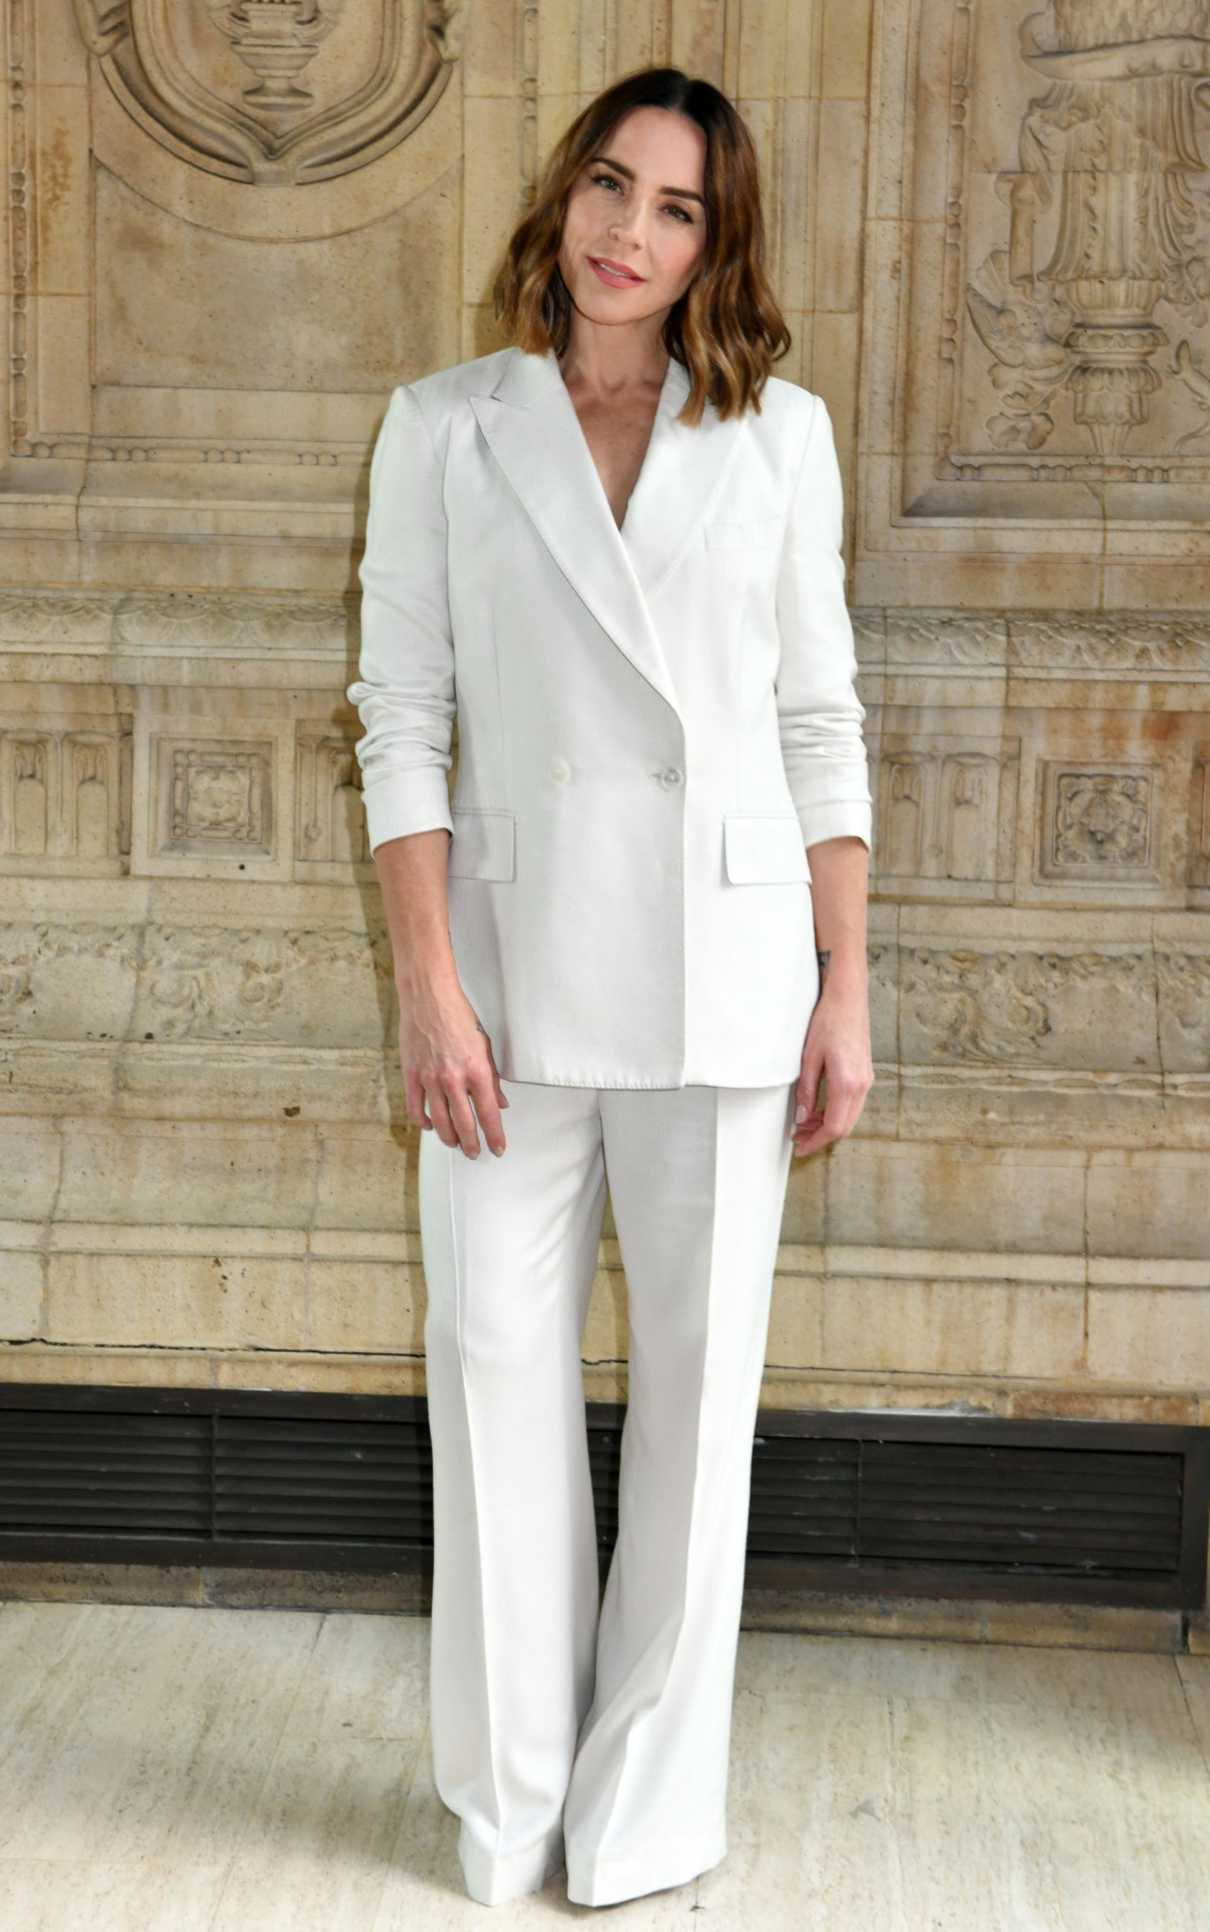 Melanie Chisholm in a White Suit